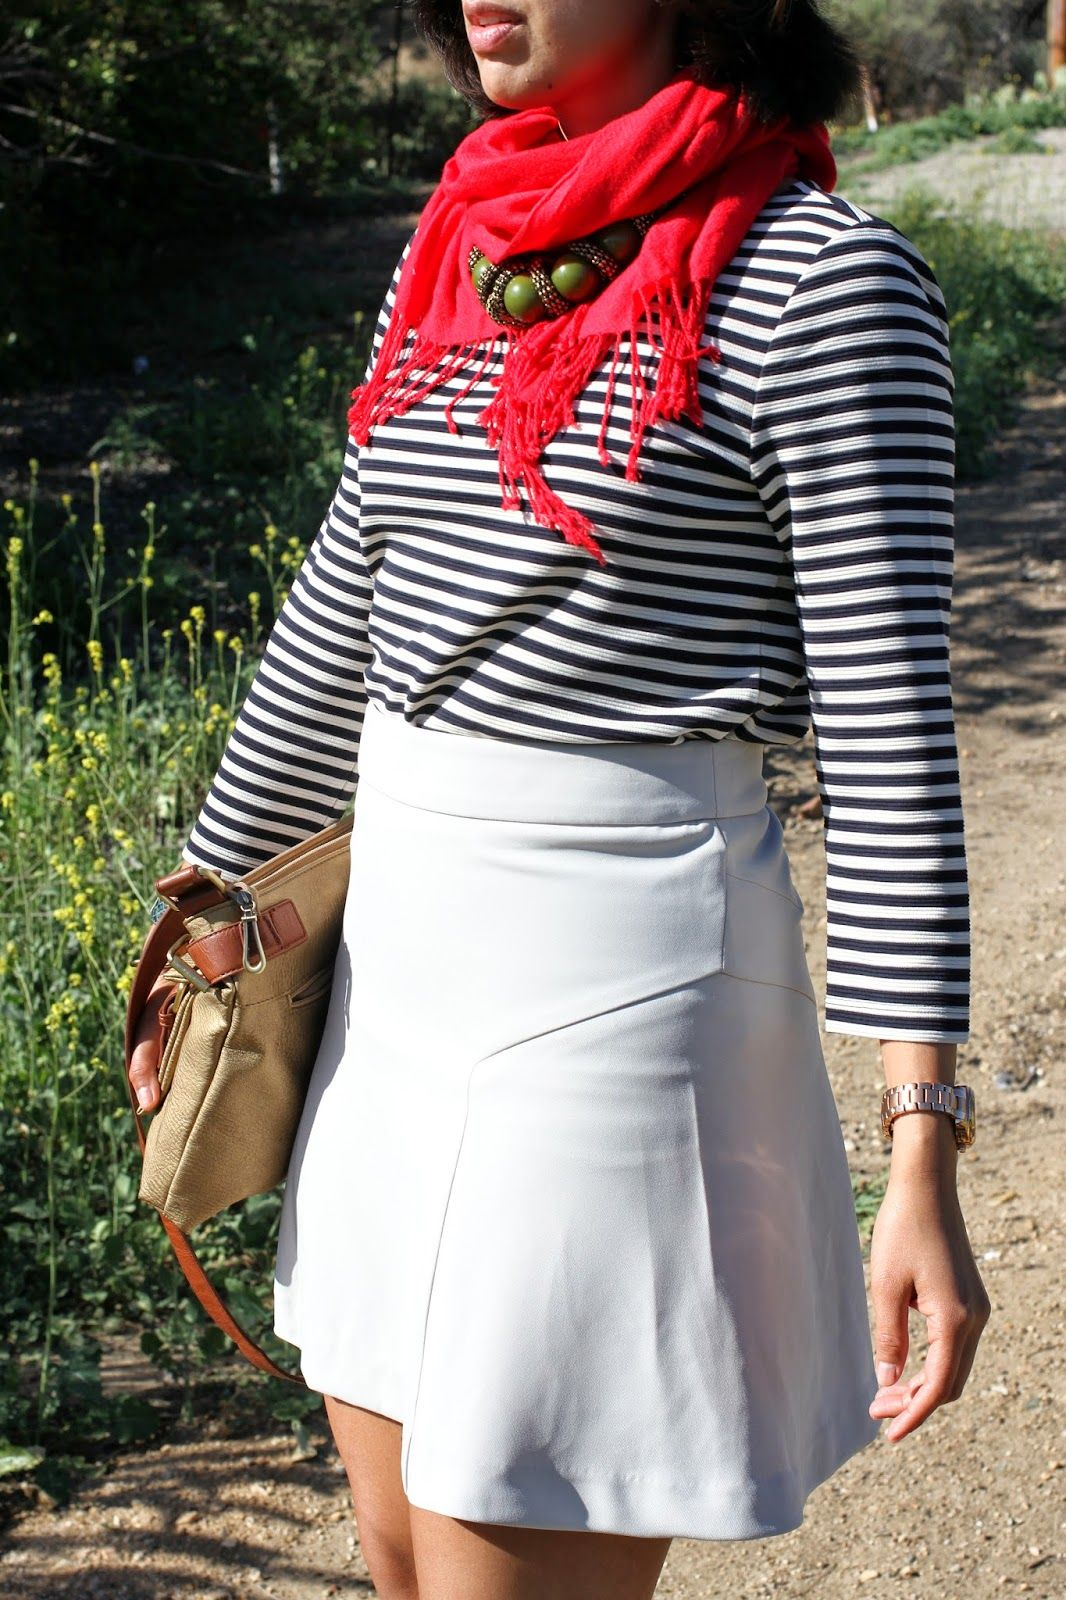 Rocks Fashion Bug French Country Style Inspired Outfit Using Stripes And A Touch Of